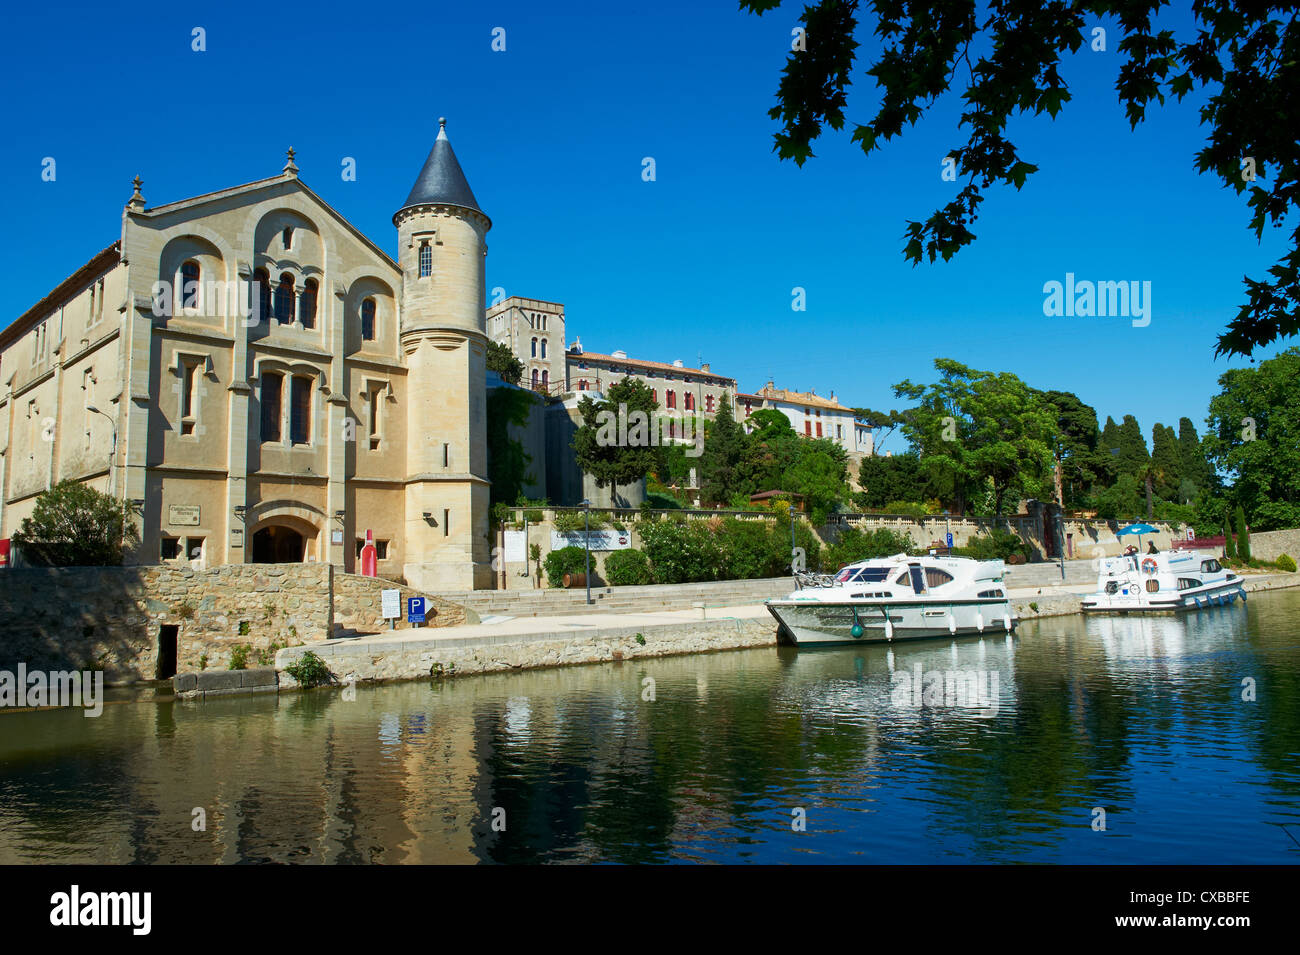 The castle of Ventenac-en-Minervois, Navigation on the Canal du Midi, Aude, Languedoc Roussillon, France - Stock Image